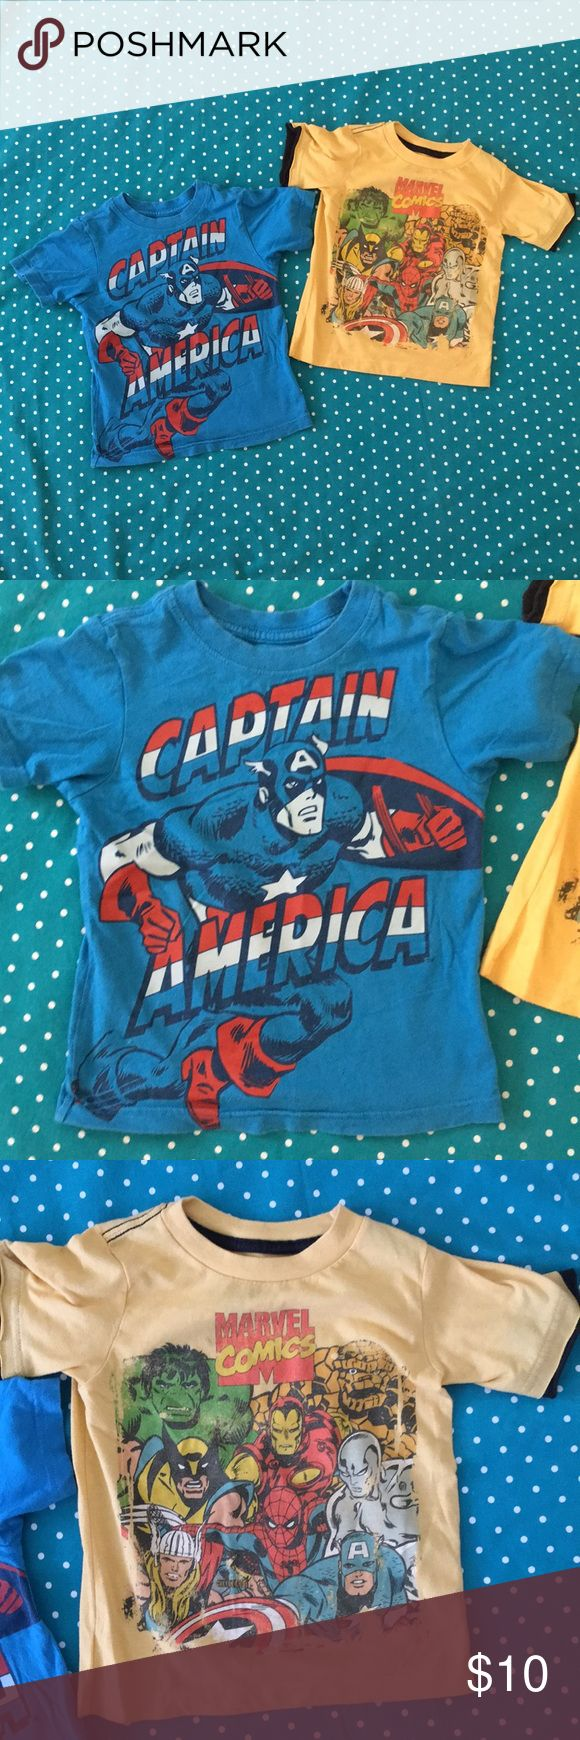 Marvel Comics - Short Sleeve Shirt Bundle - 3T Marvel Comics - Short Sleeve Shirt Bundle - 3T - in good condition. One owner. Smoke free & pet free home. Bundle or two shirts as shown in pictures. Marvel Shirts & Tops Tees - Short Sleeve